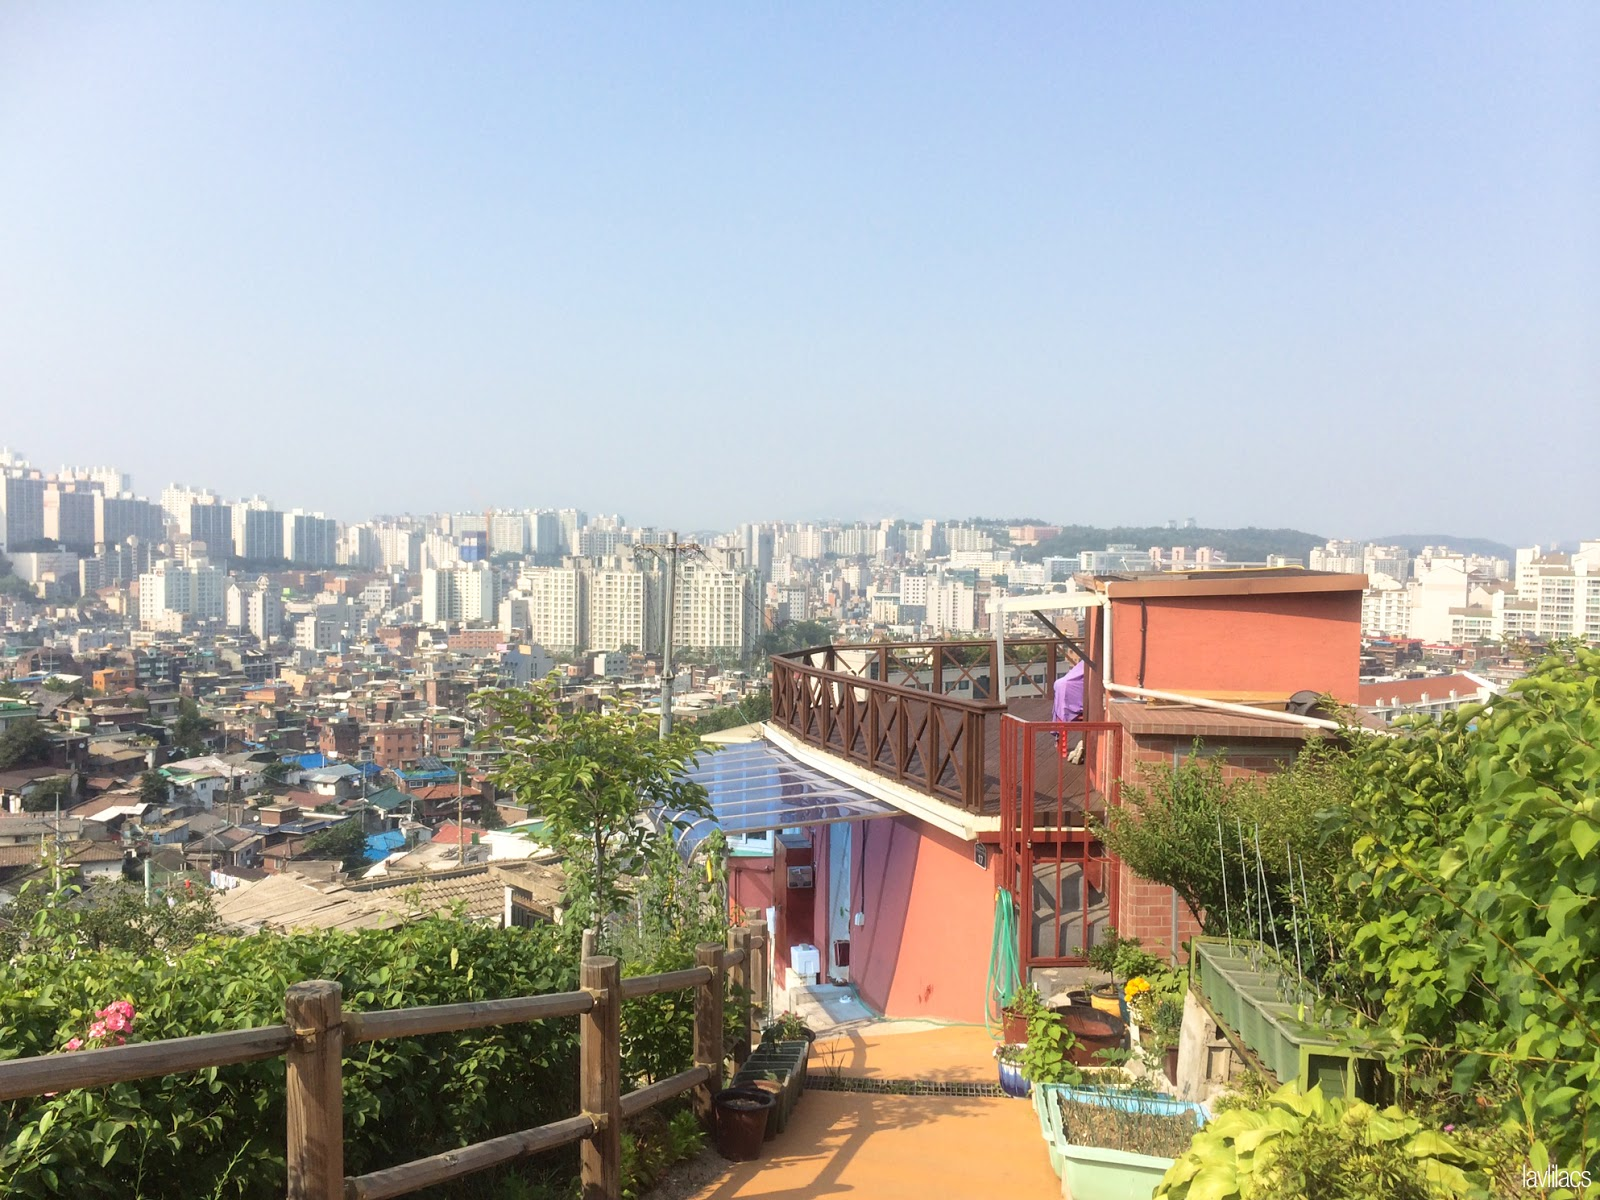 Seoul, Korea - Summer Study Abroad 2014 - Seoul Fortress Trail - Naksan Trail Course - Path to nearby homes